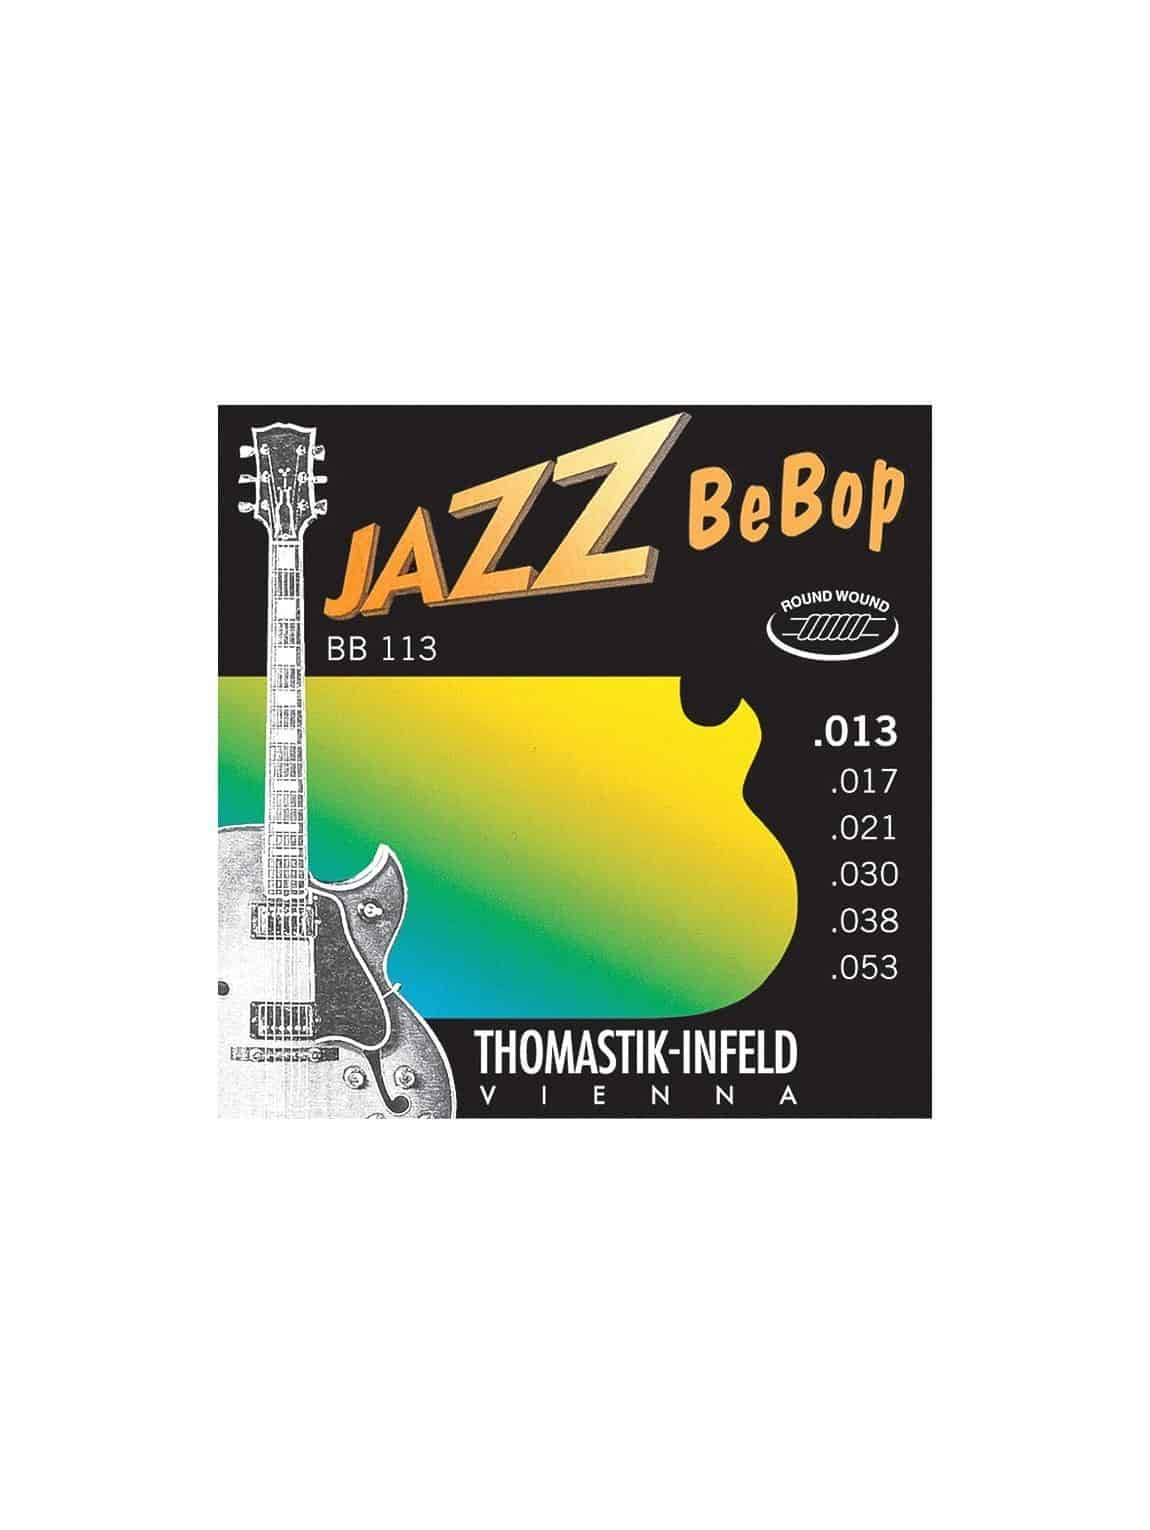 Thomastik - BB113- Jazz Bebop Electric Acoustic Guitar Strings - 13-53 Gauge